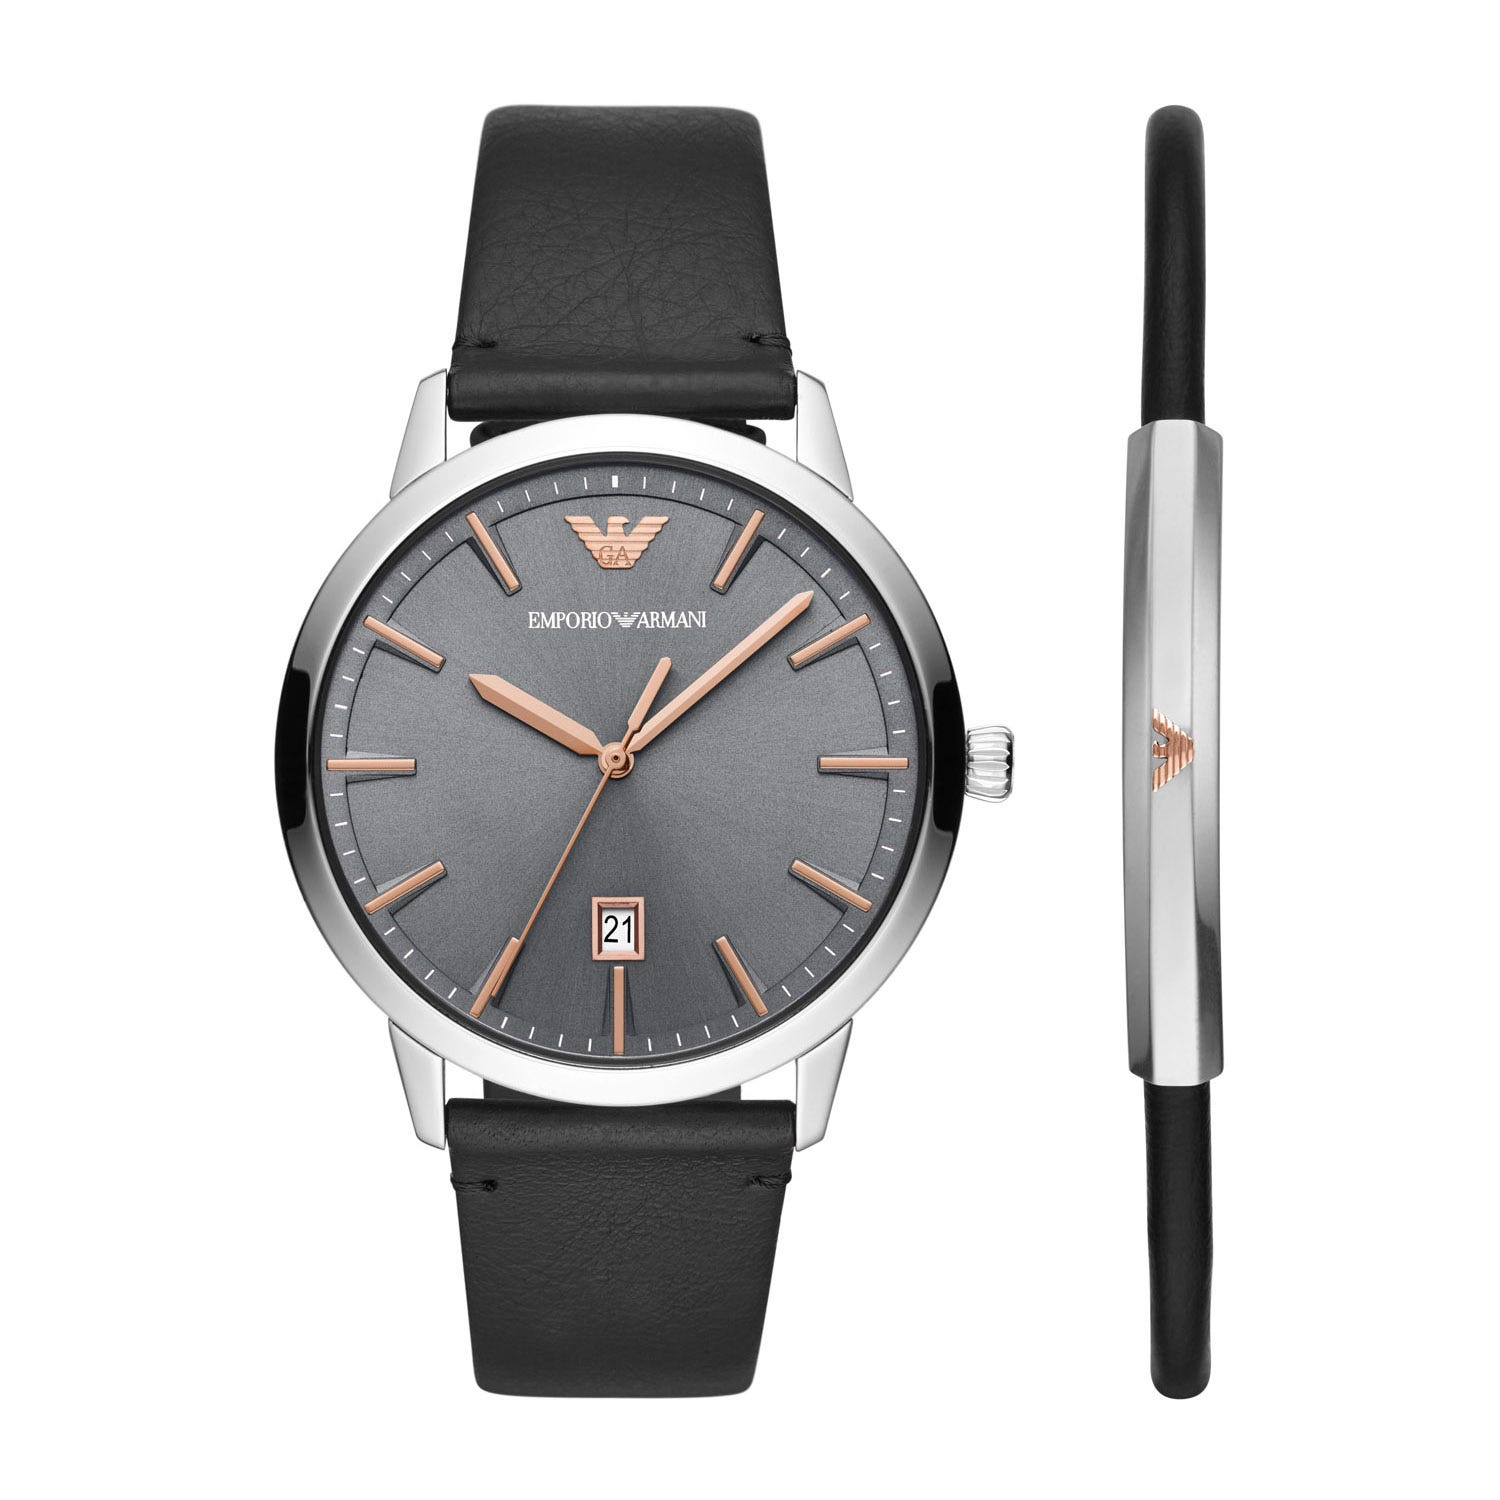 Emporio Armani Men's Black Leather Watch & Bracelet Set